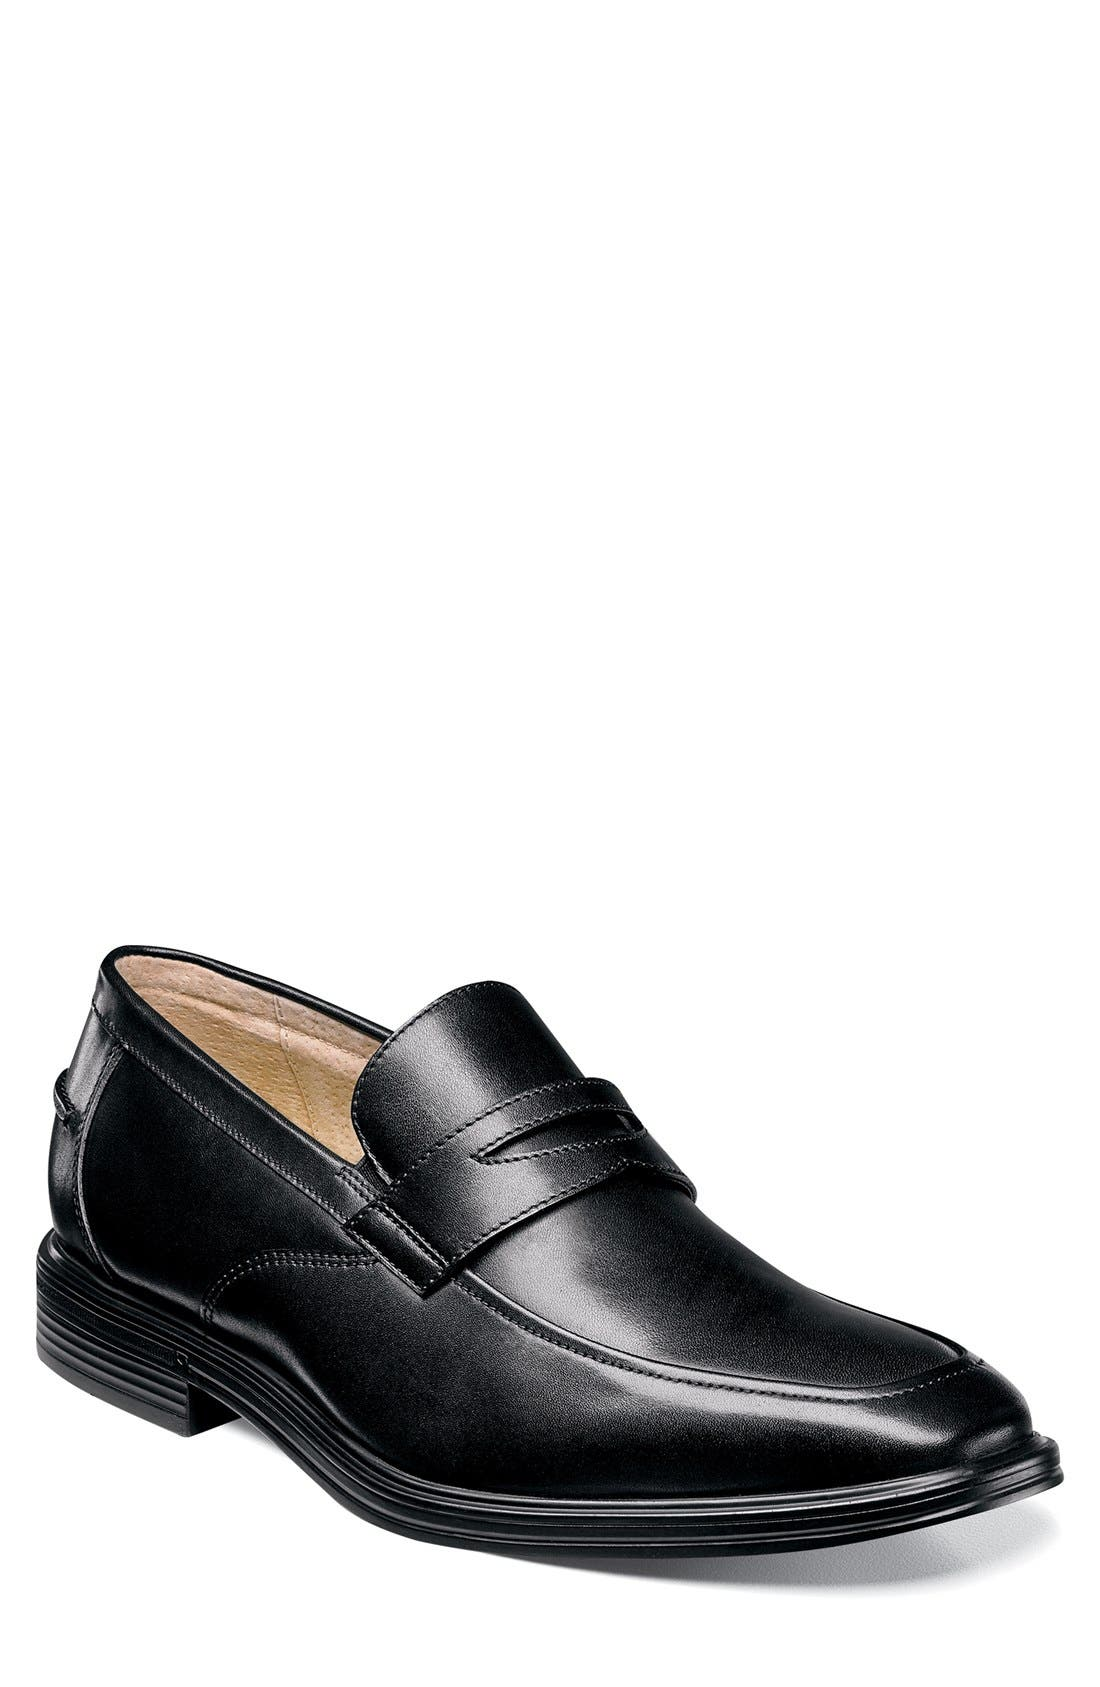 'Heights' Penny Loafer,                         Main,                         color, Black Leather